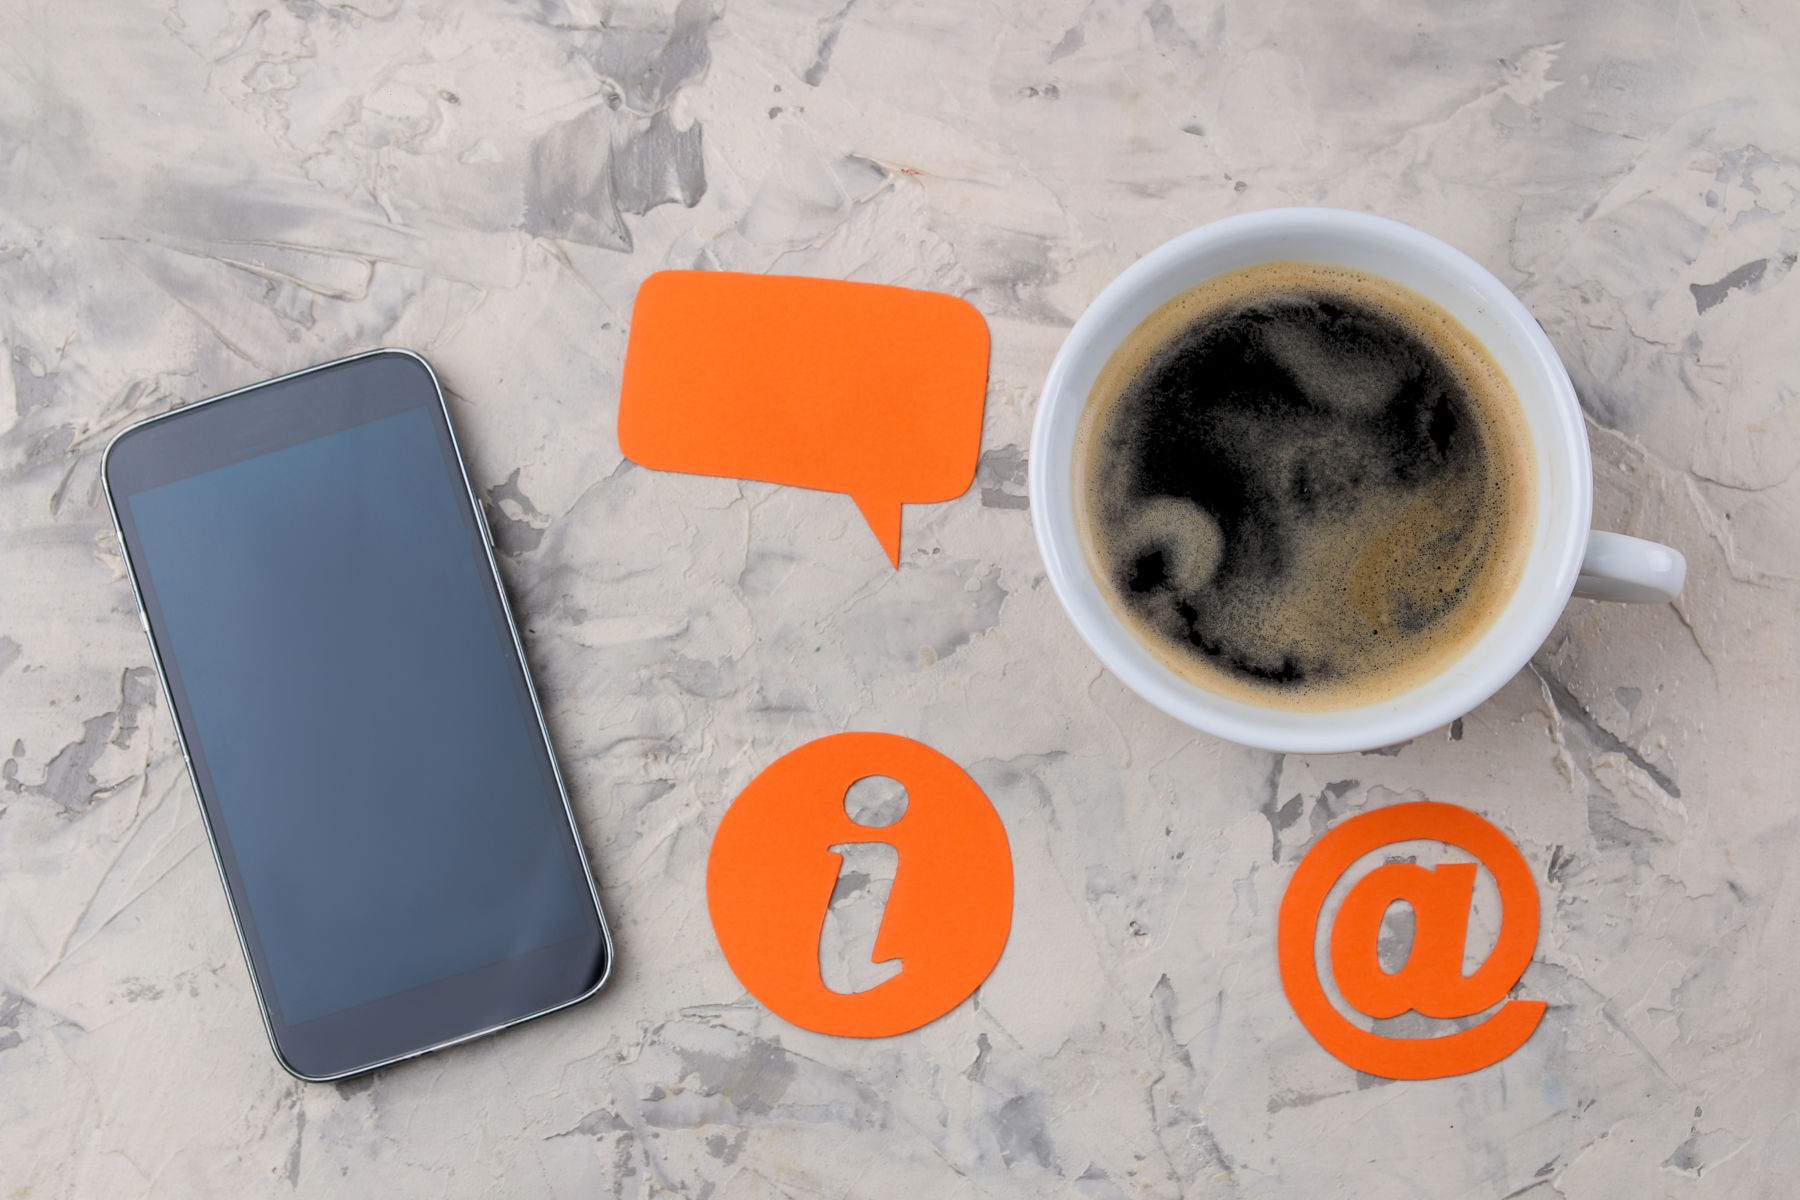 client support service. Contact us for feedback. desktop with a cup of coffee and a smartphone and various feedback icons.